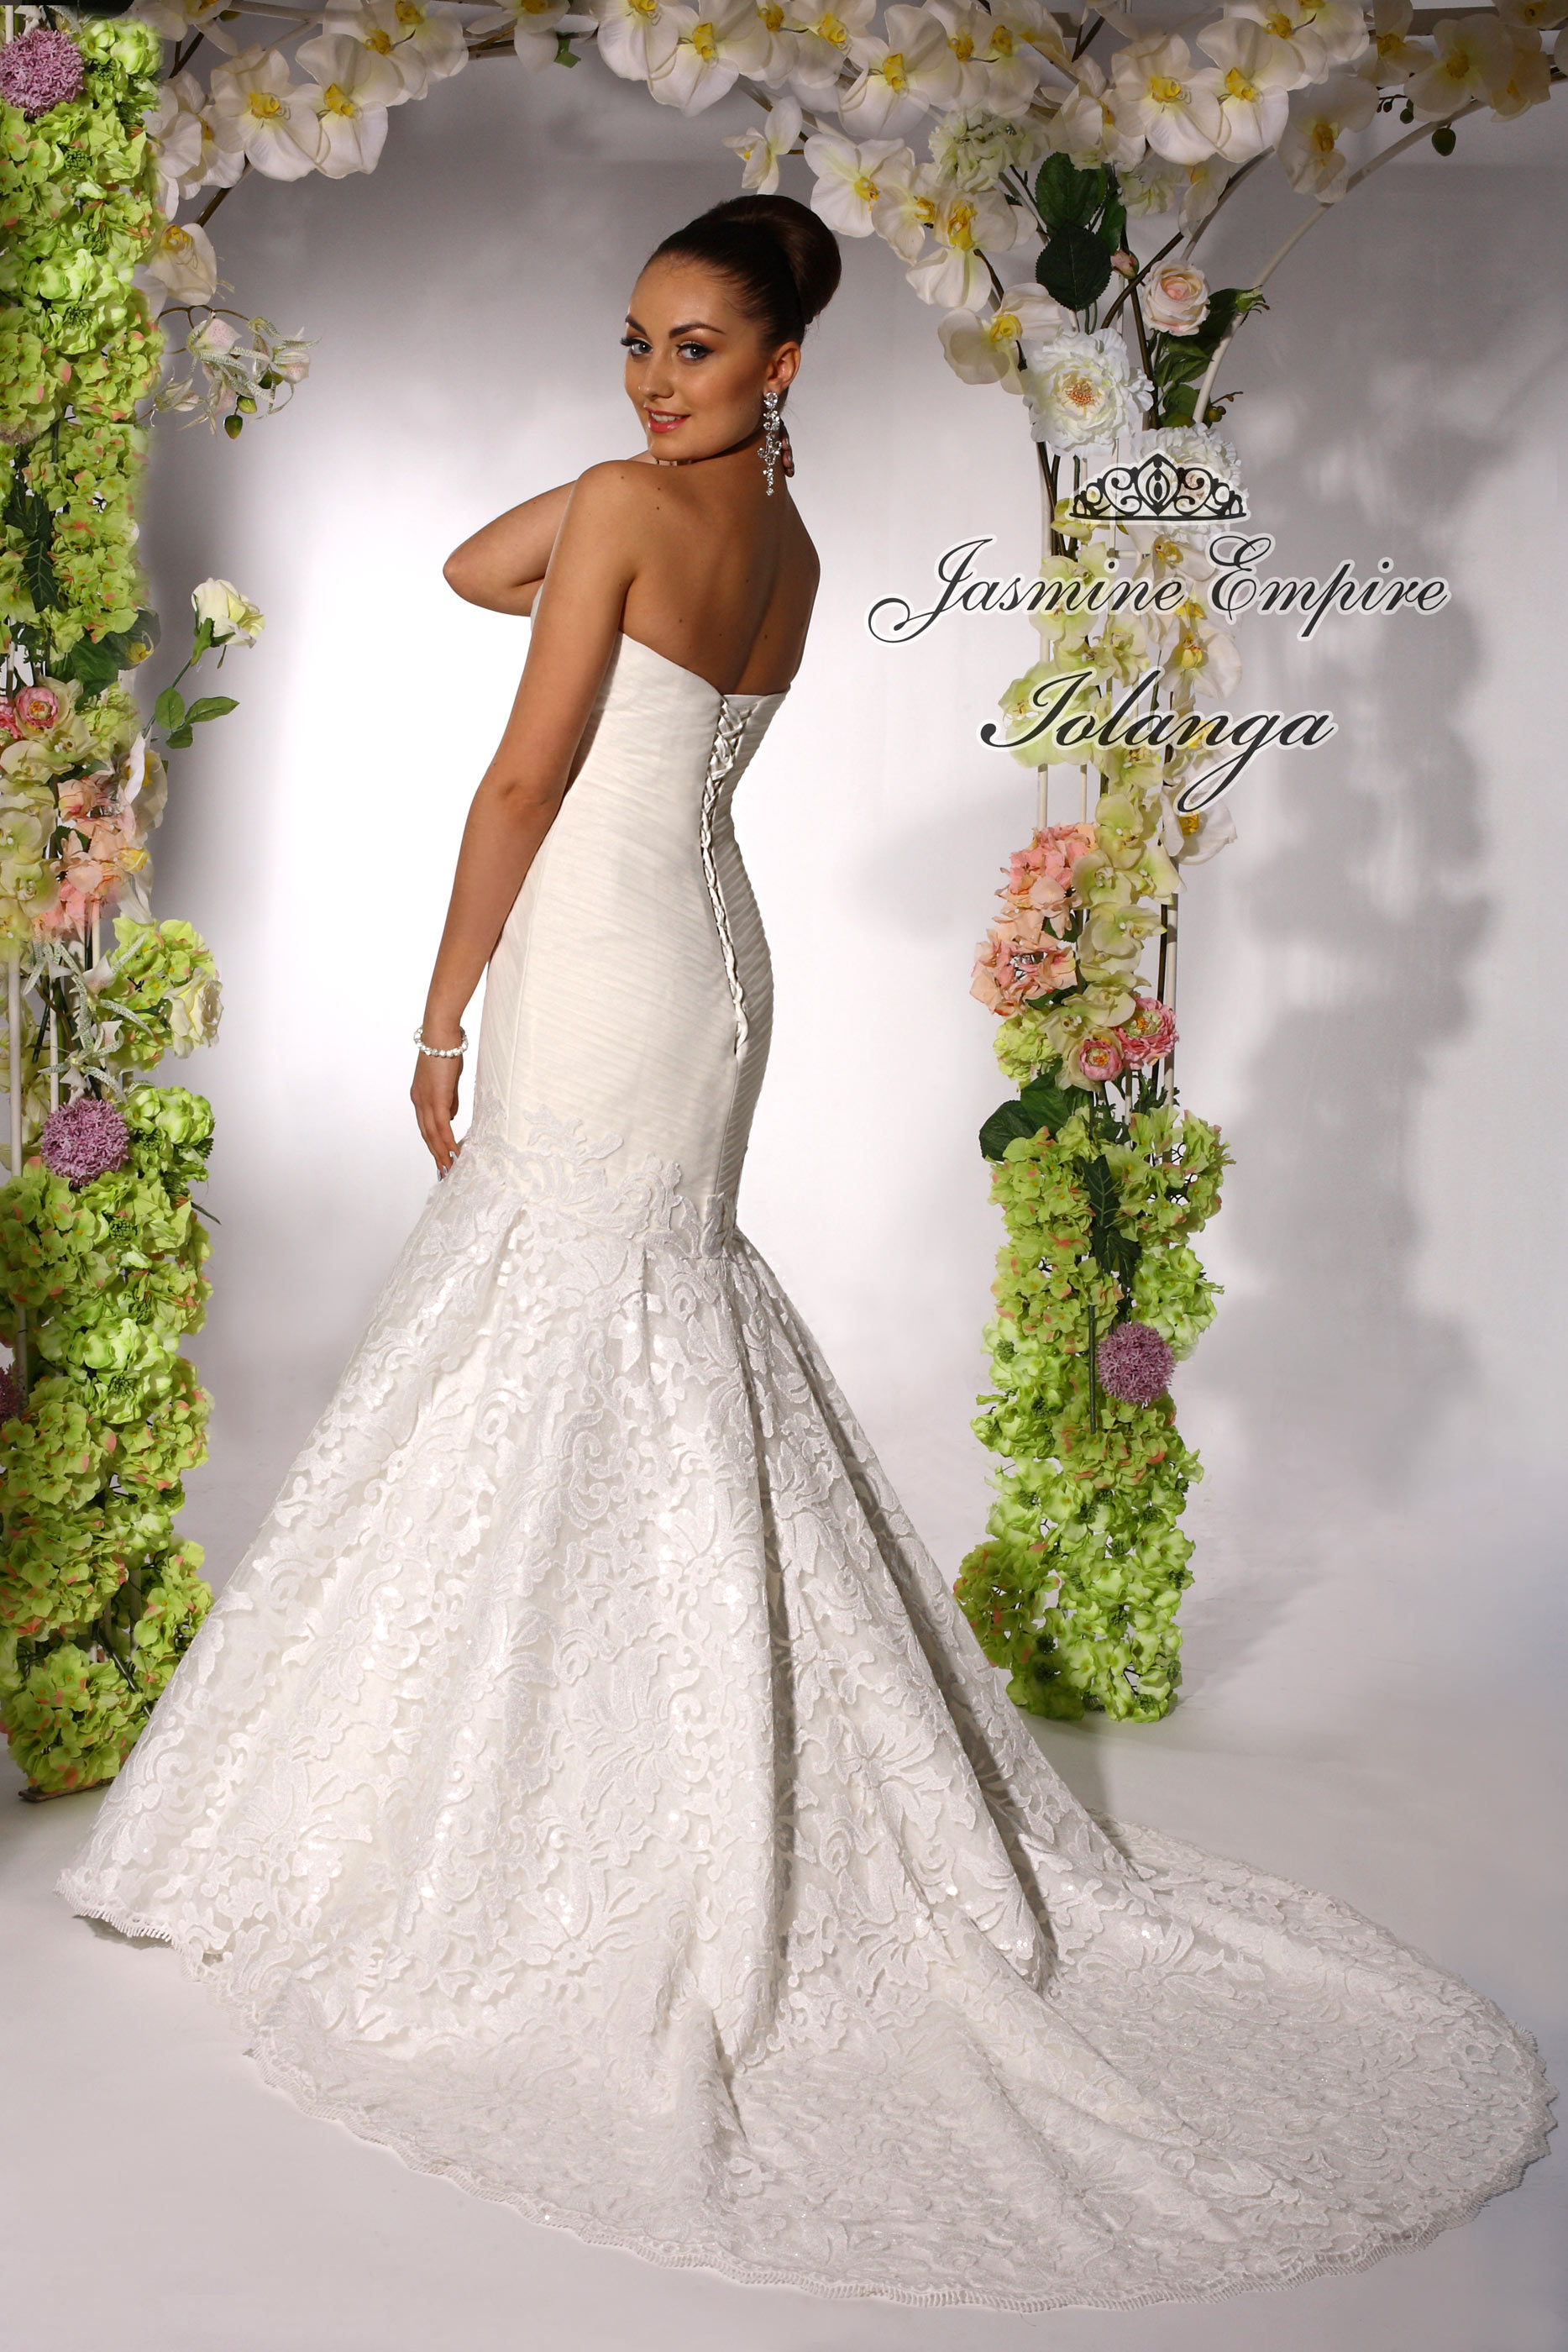 Wedding Dress Iolanga  3